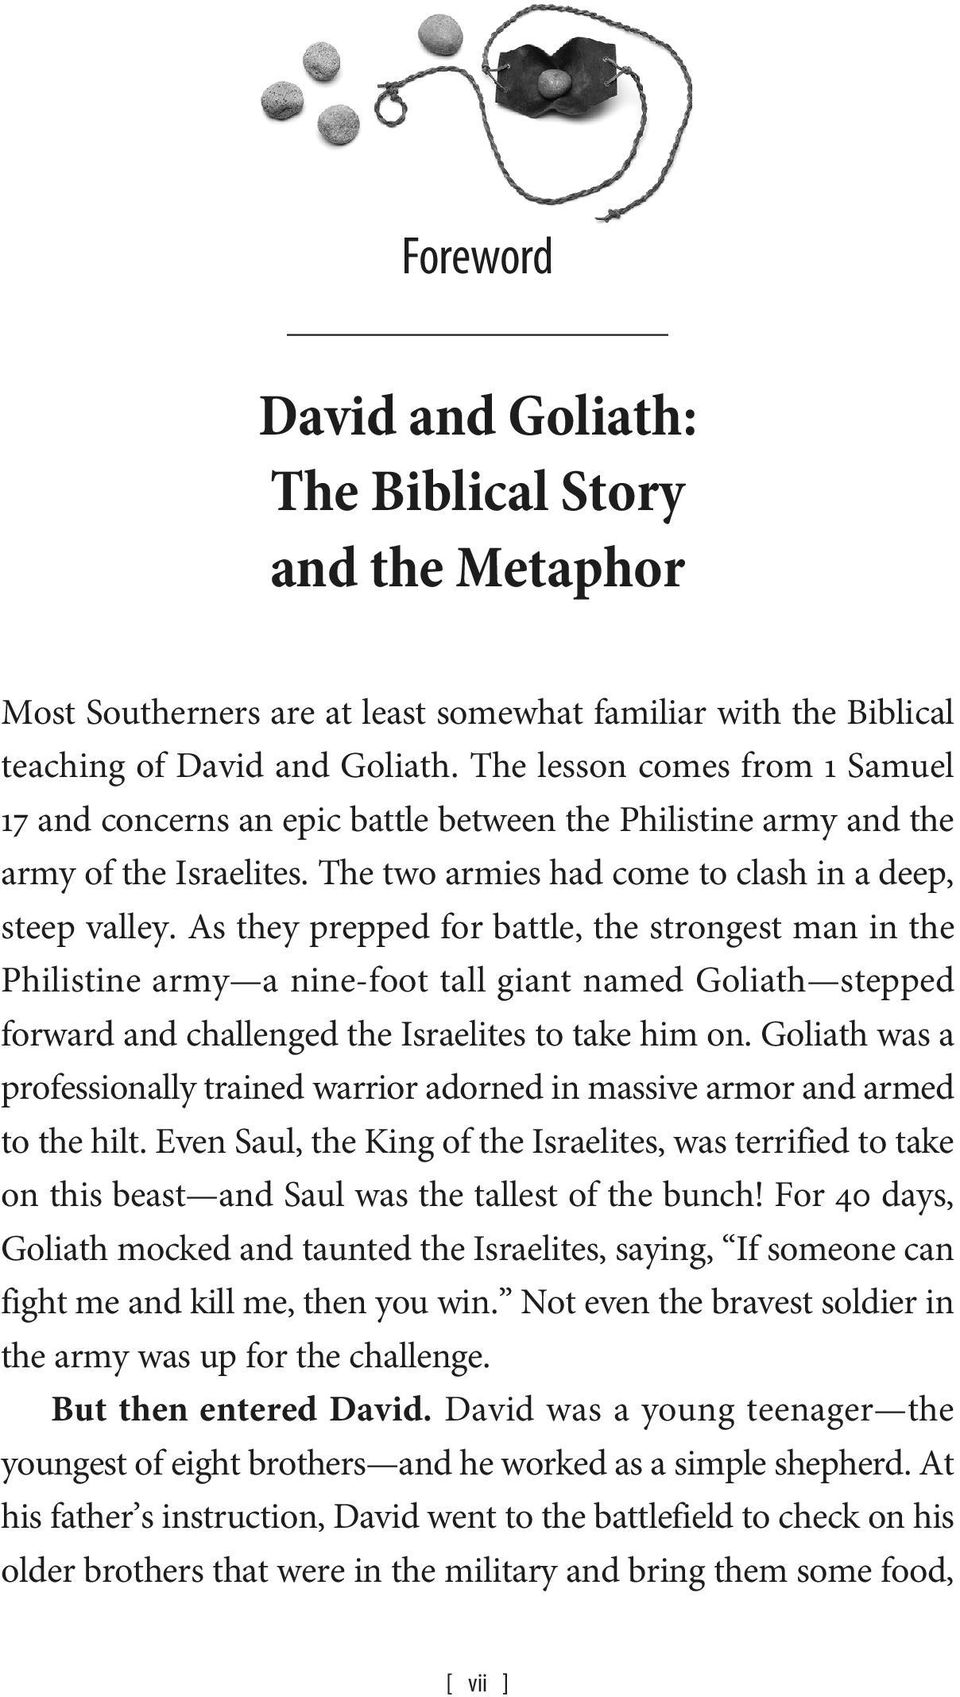 As they prepped for battle, the strongest man in the Philistine army a nine-foot tall giant named Goliath stepped forward and challenged the Israelites to take him on.